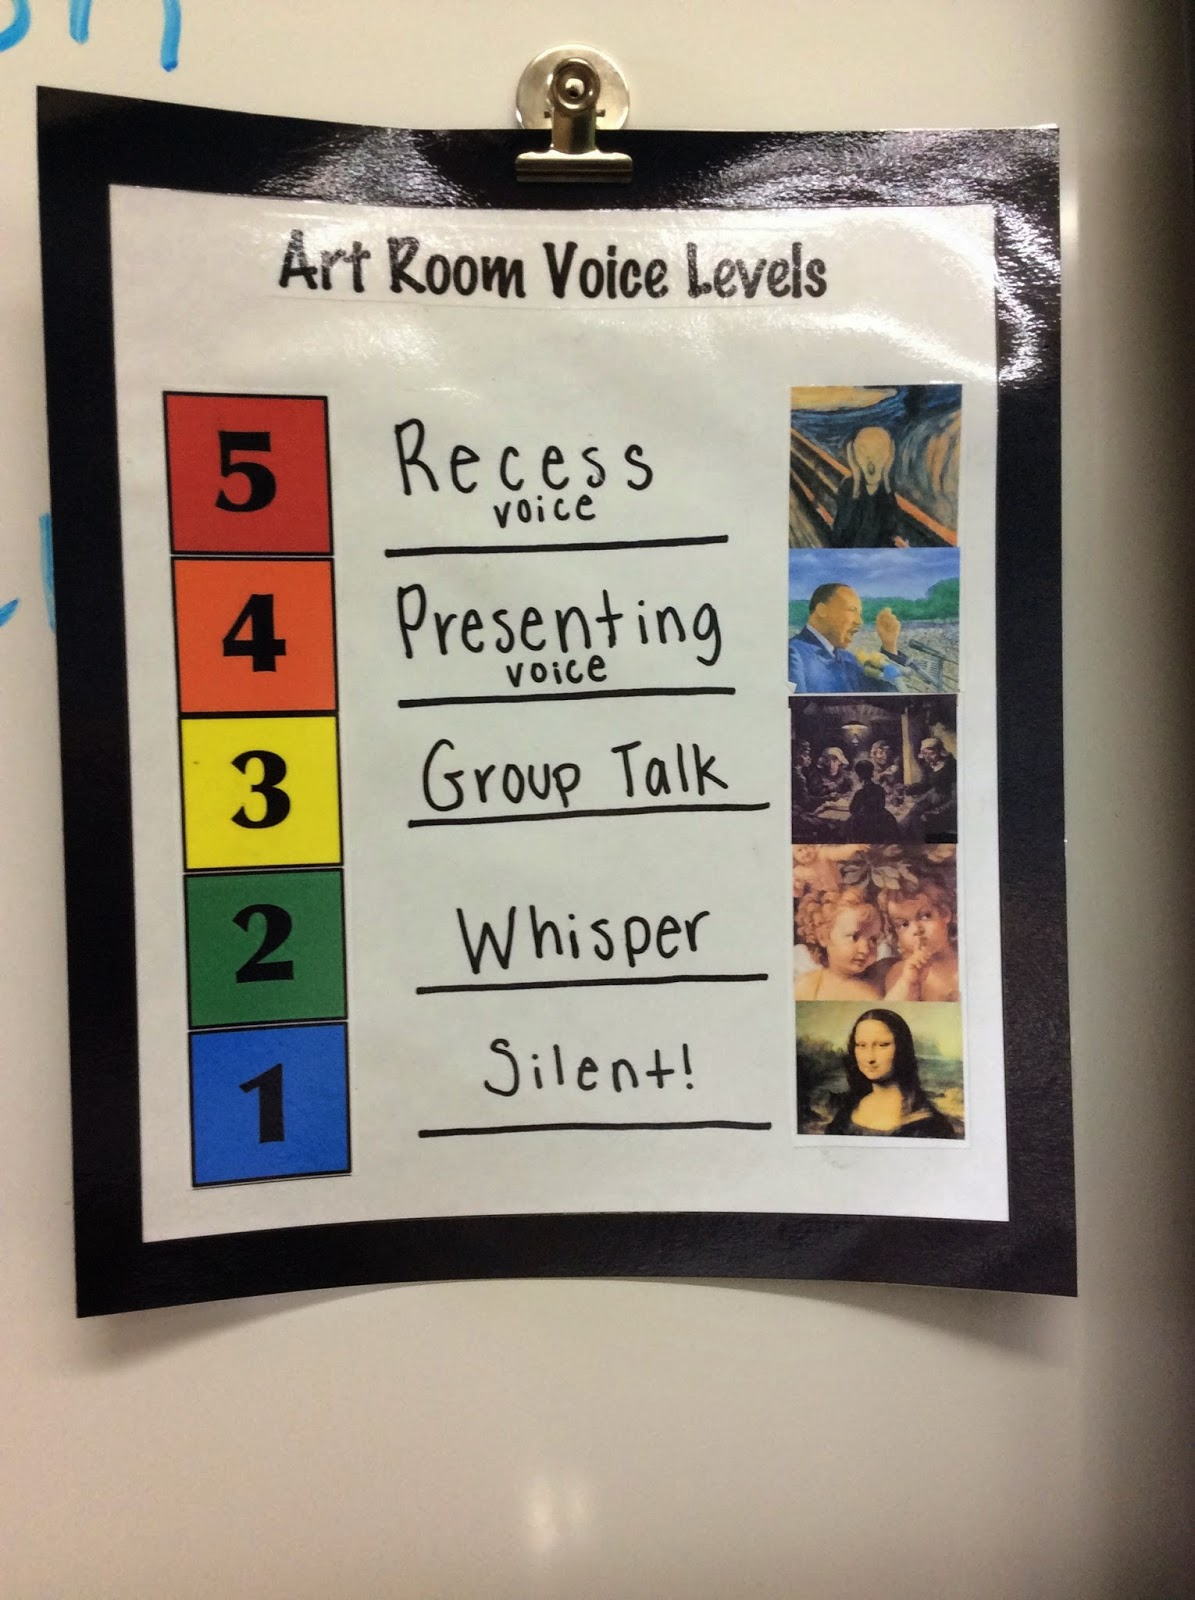 ... Which I Use For Different Noise Levels I Want In My Classroom Depending  On Which Project We Are Working On. Recess Voice In The Art Room Is Never  Okay!